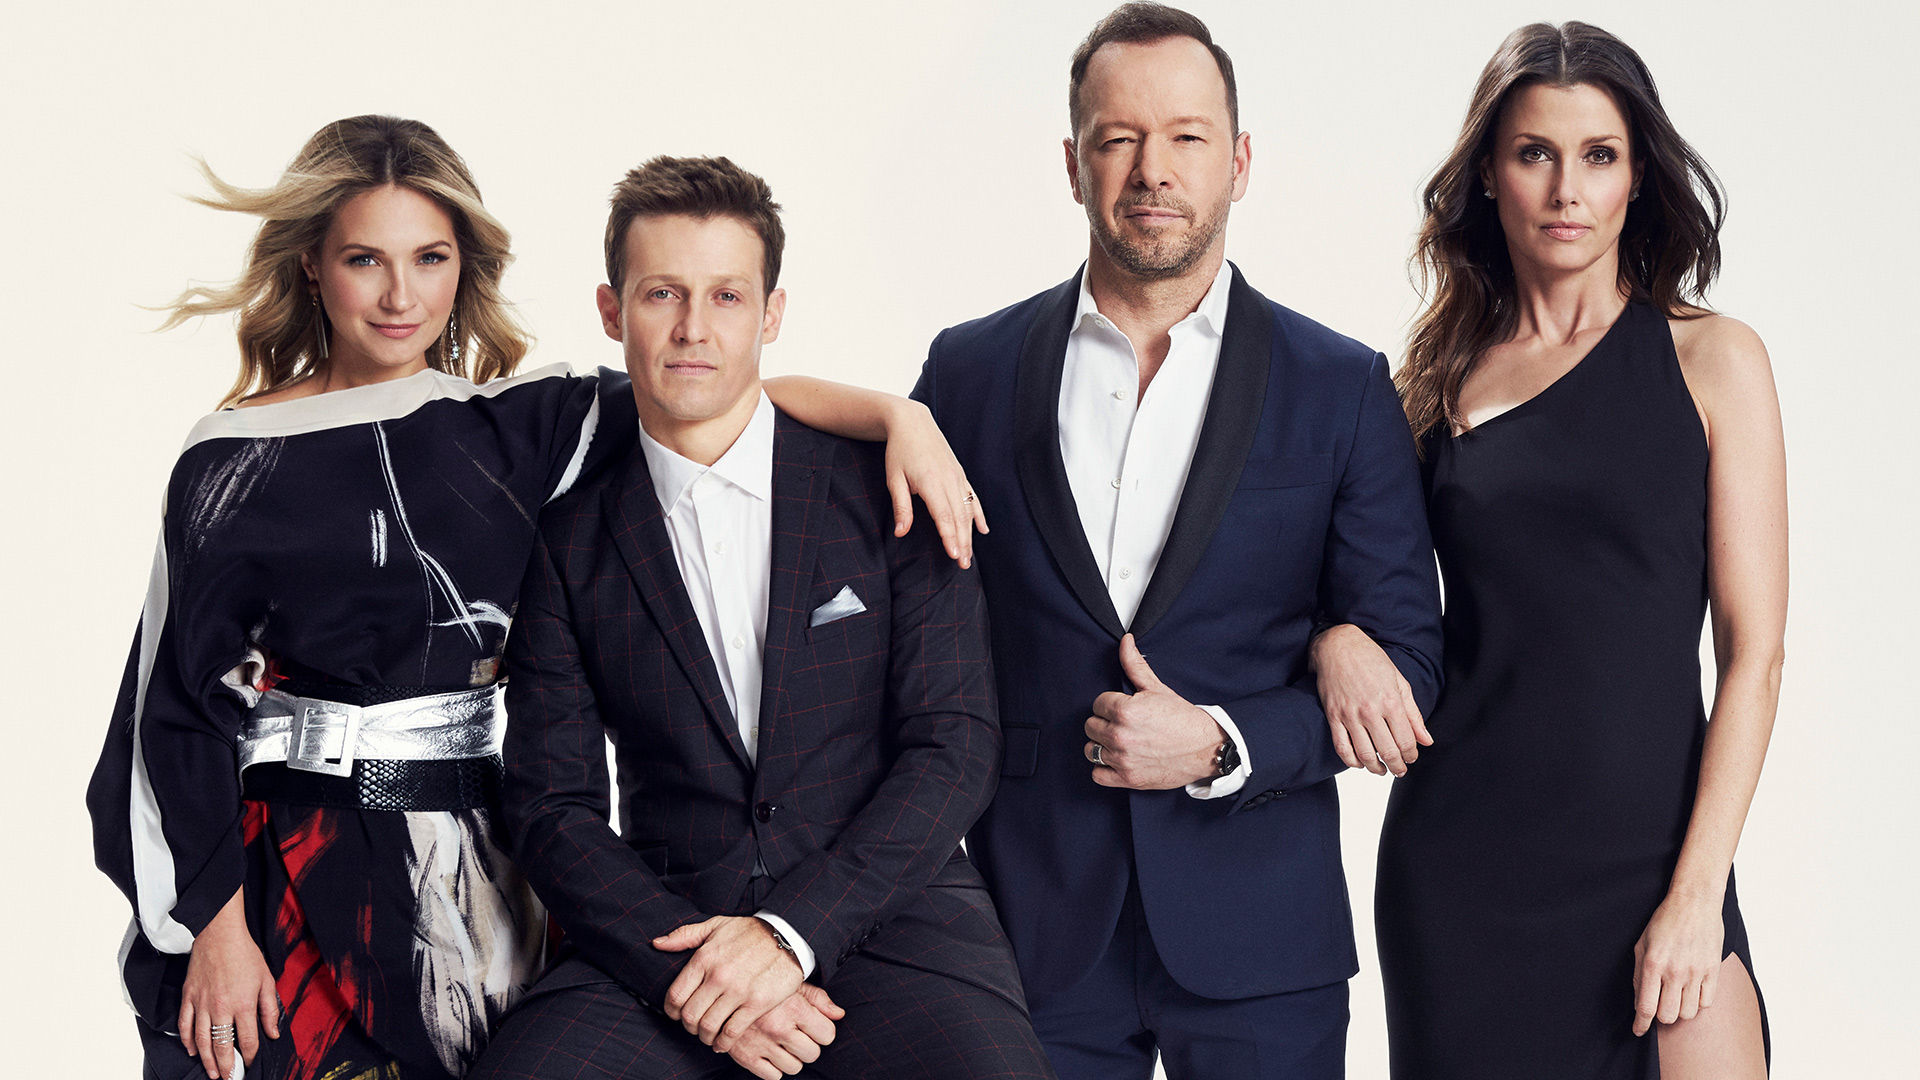 The Blue Bloods cast feels like family